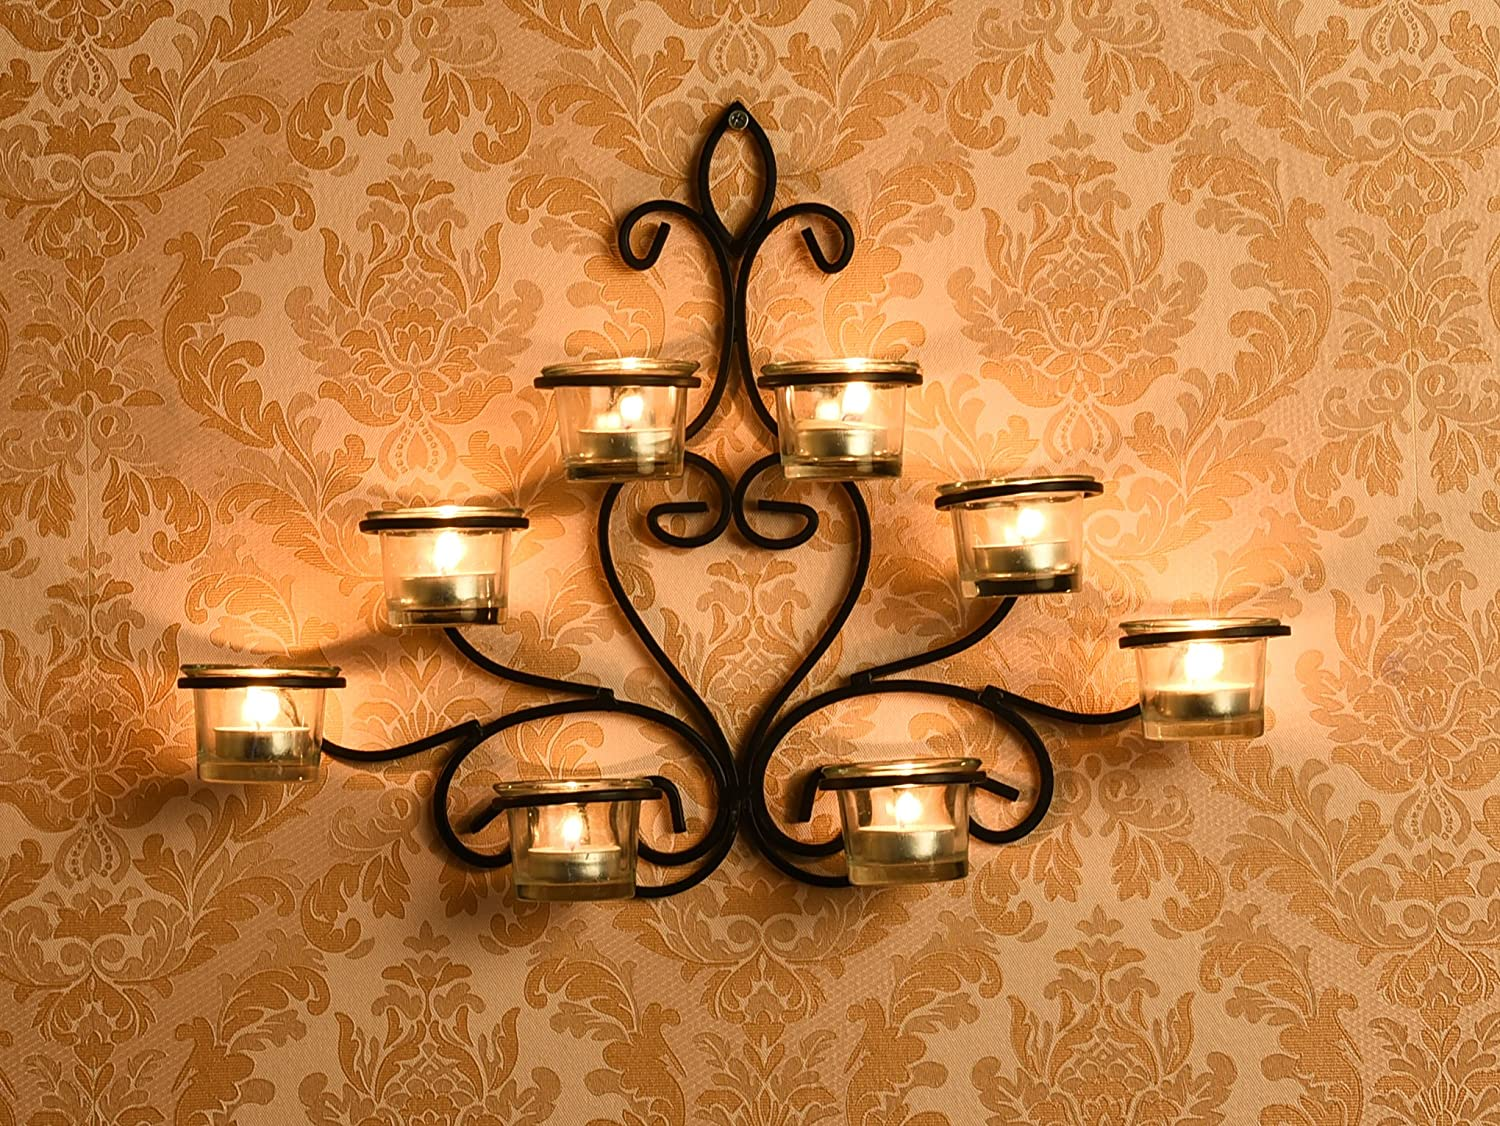 8 Cup Wall Sconce with Free Tealights